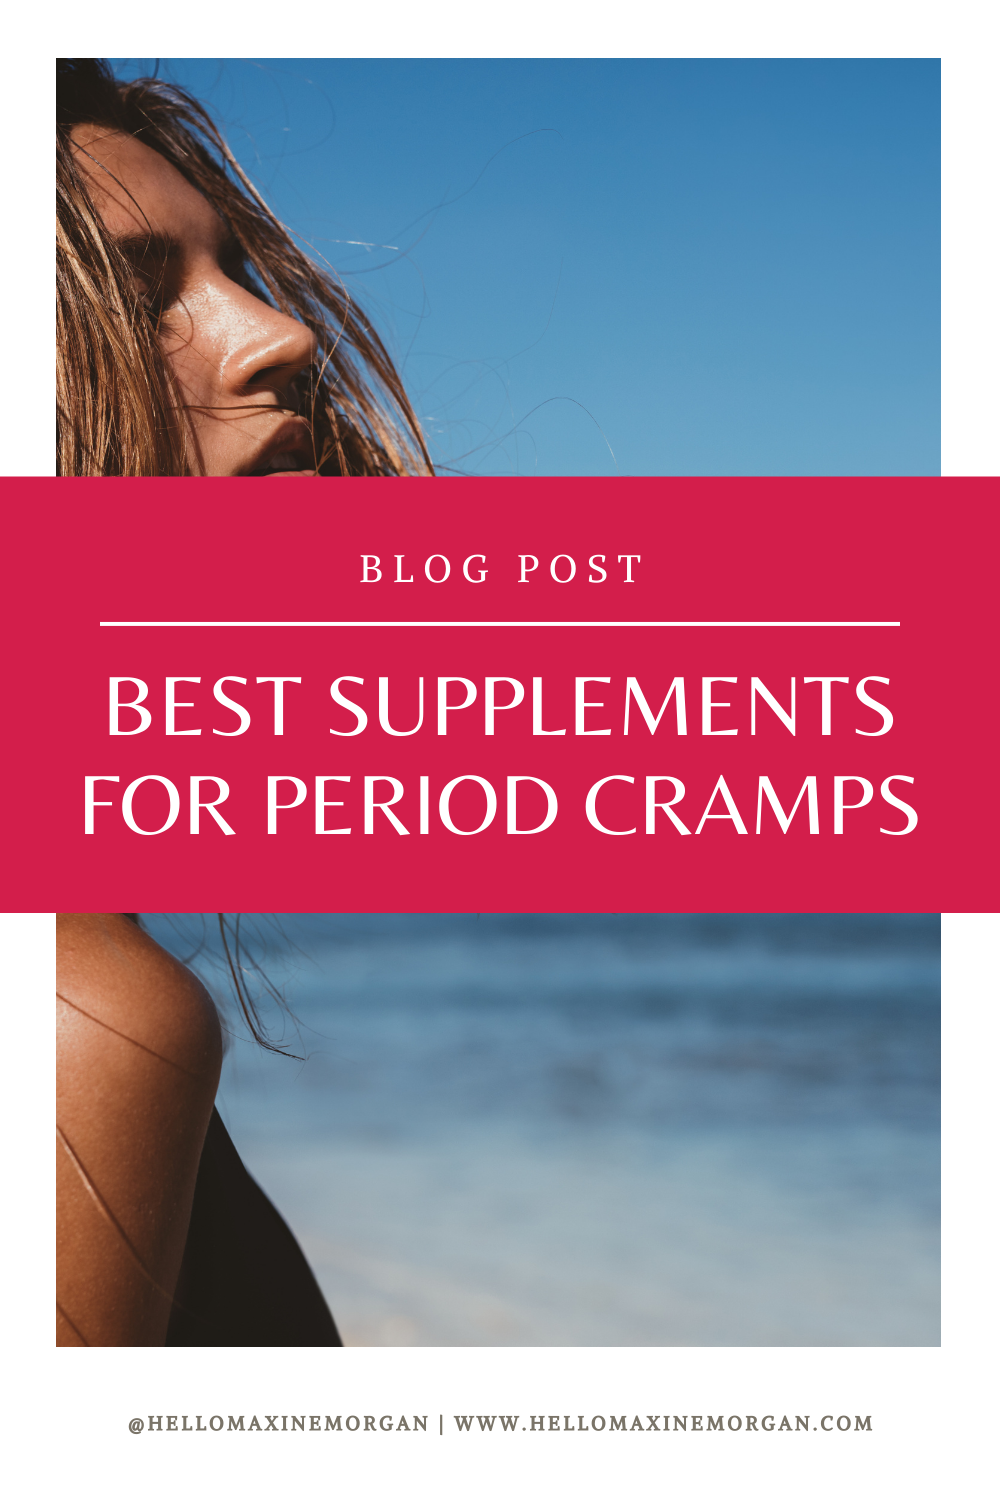 Best Supplements for Period Cramps